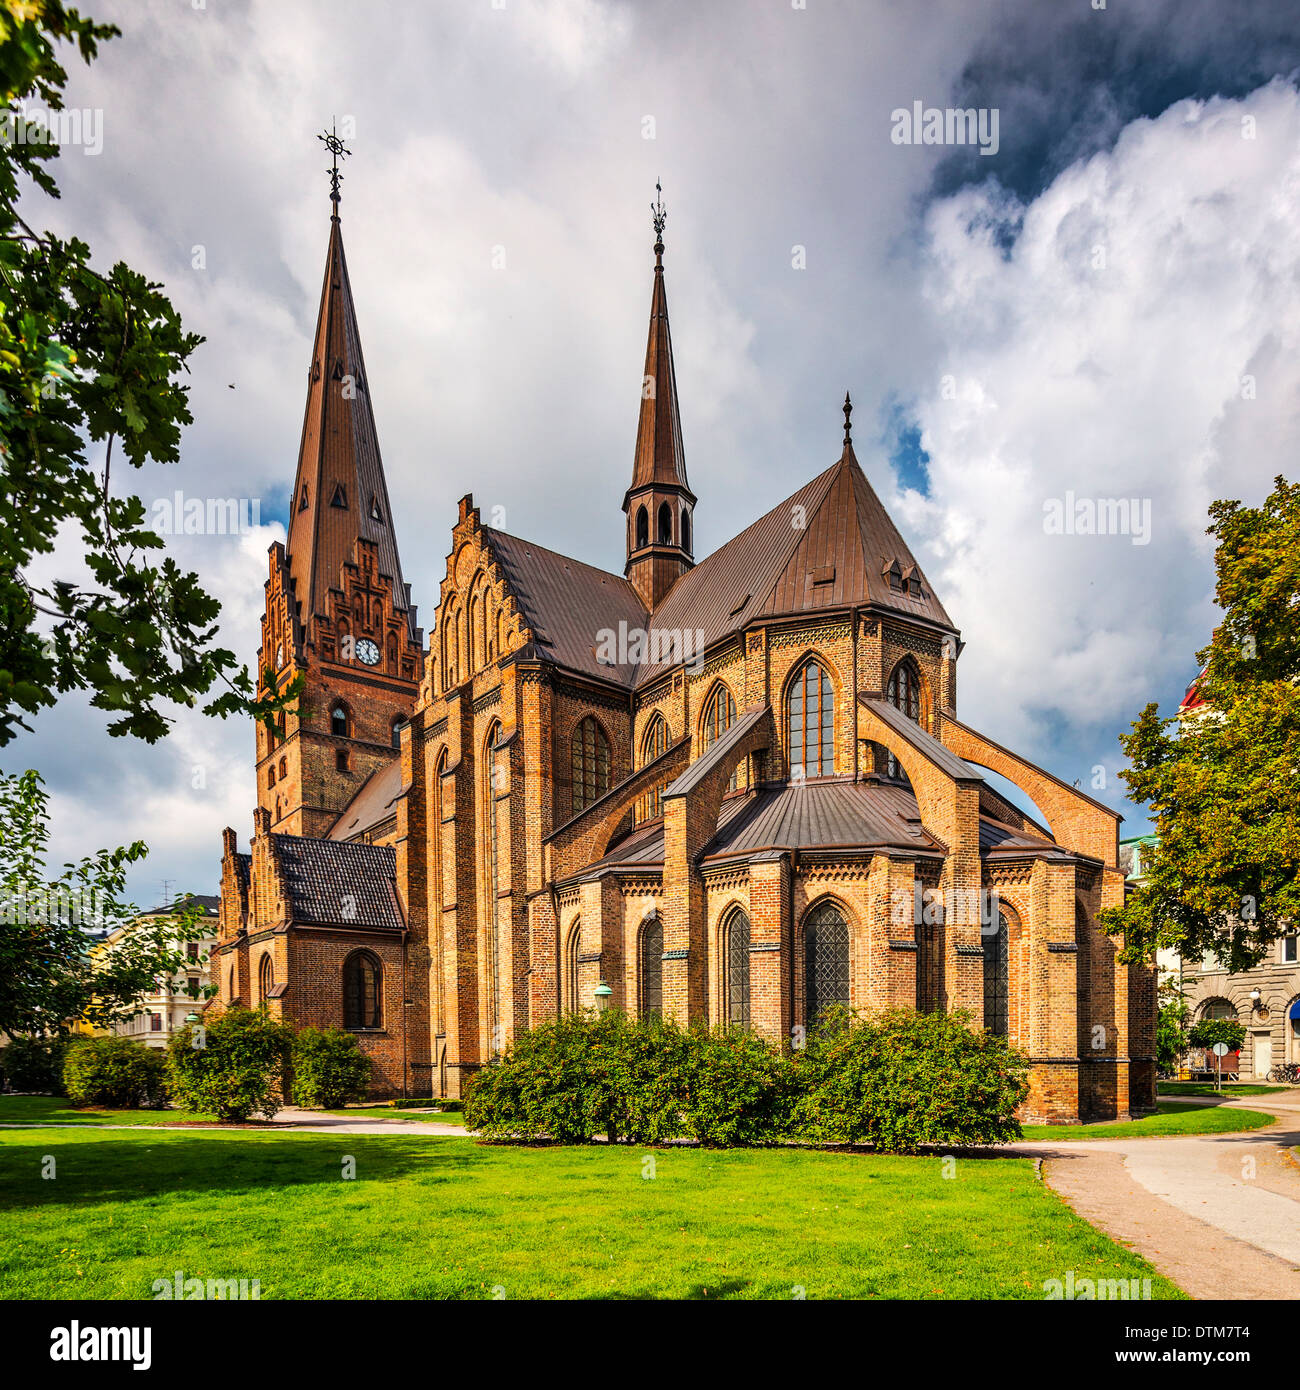 Eglise de Saint Pierre à Malmö, Suède. Photo Stock